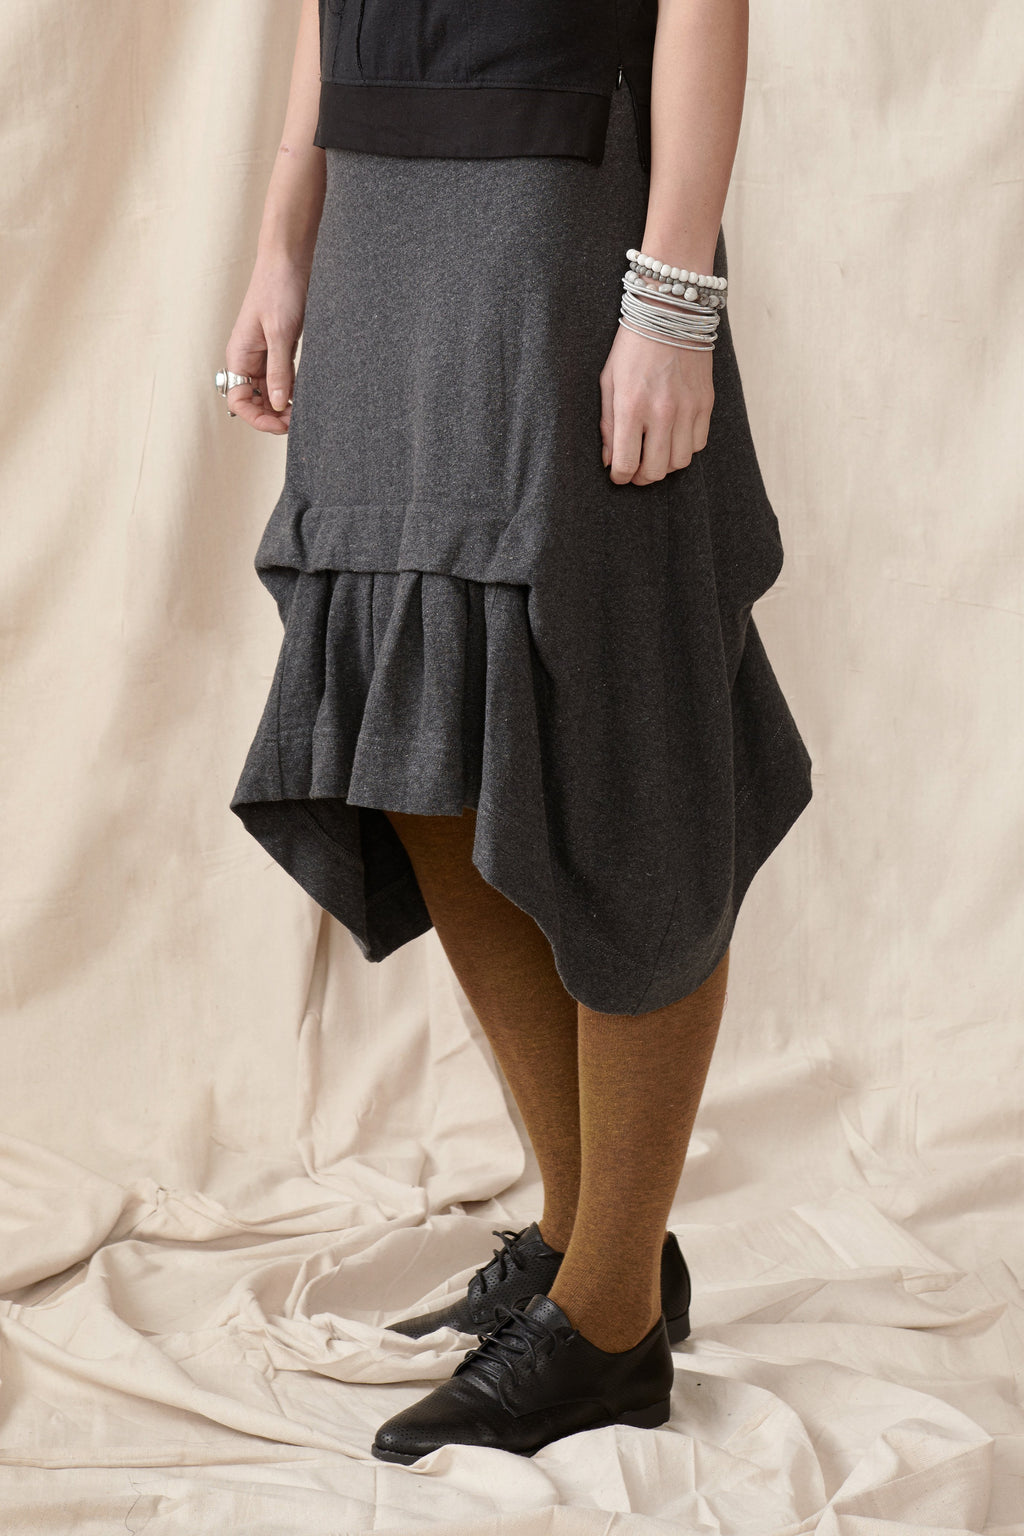 Azalea Skirt in Hemp Organic Cotton Knit Skirts Ethical Sustainable Vegan Organic Australian fashion womens clothes